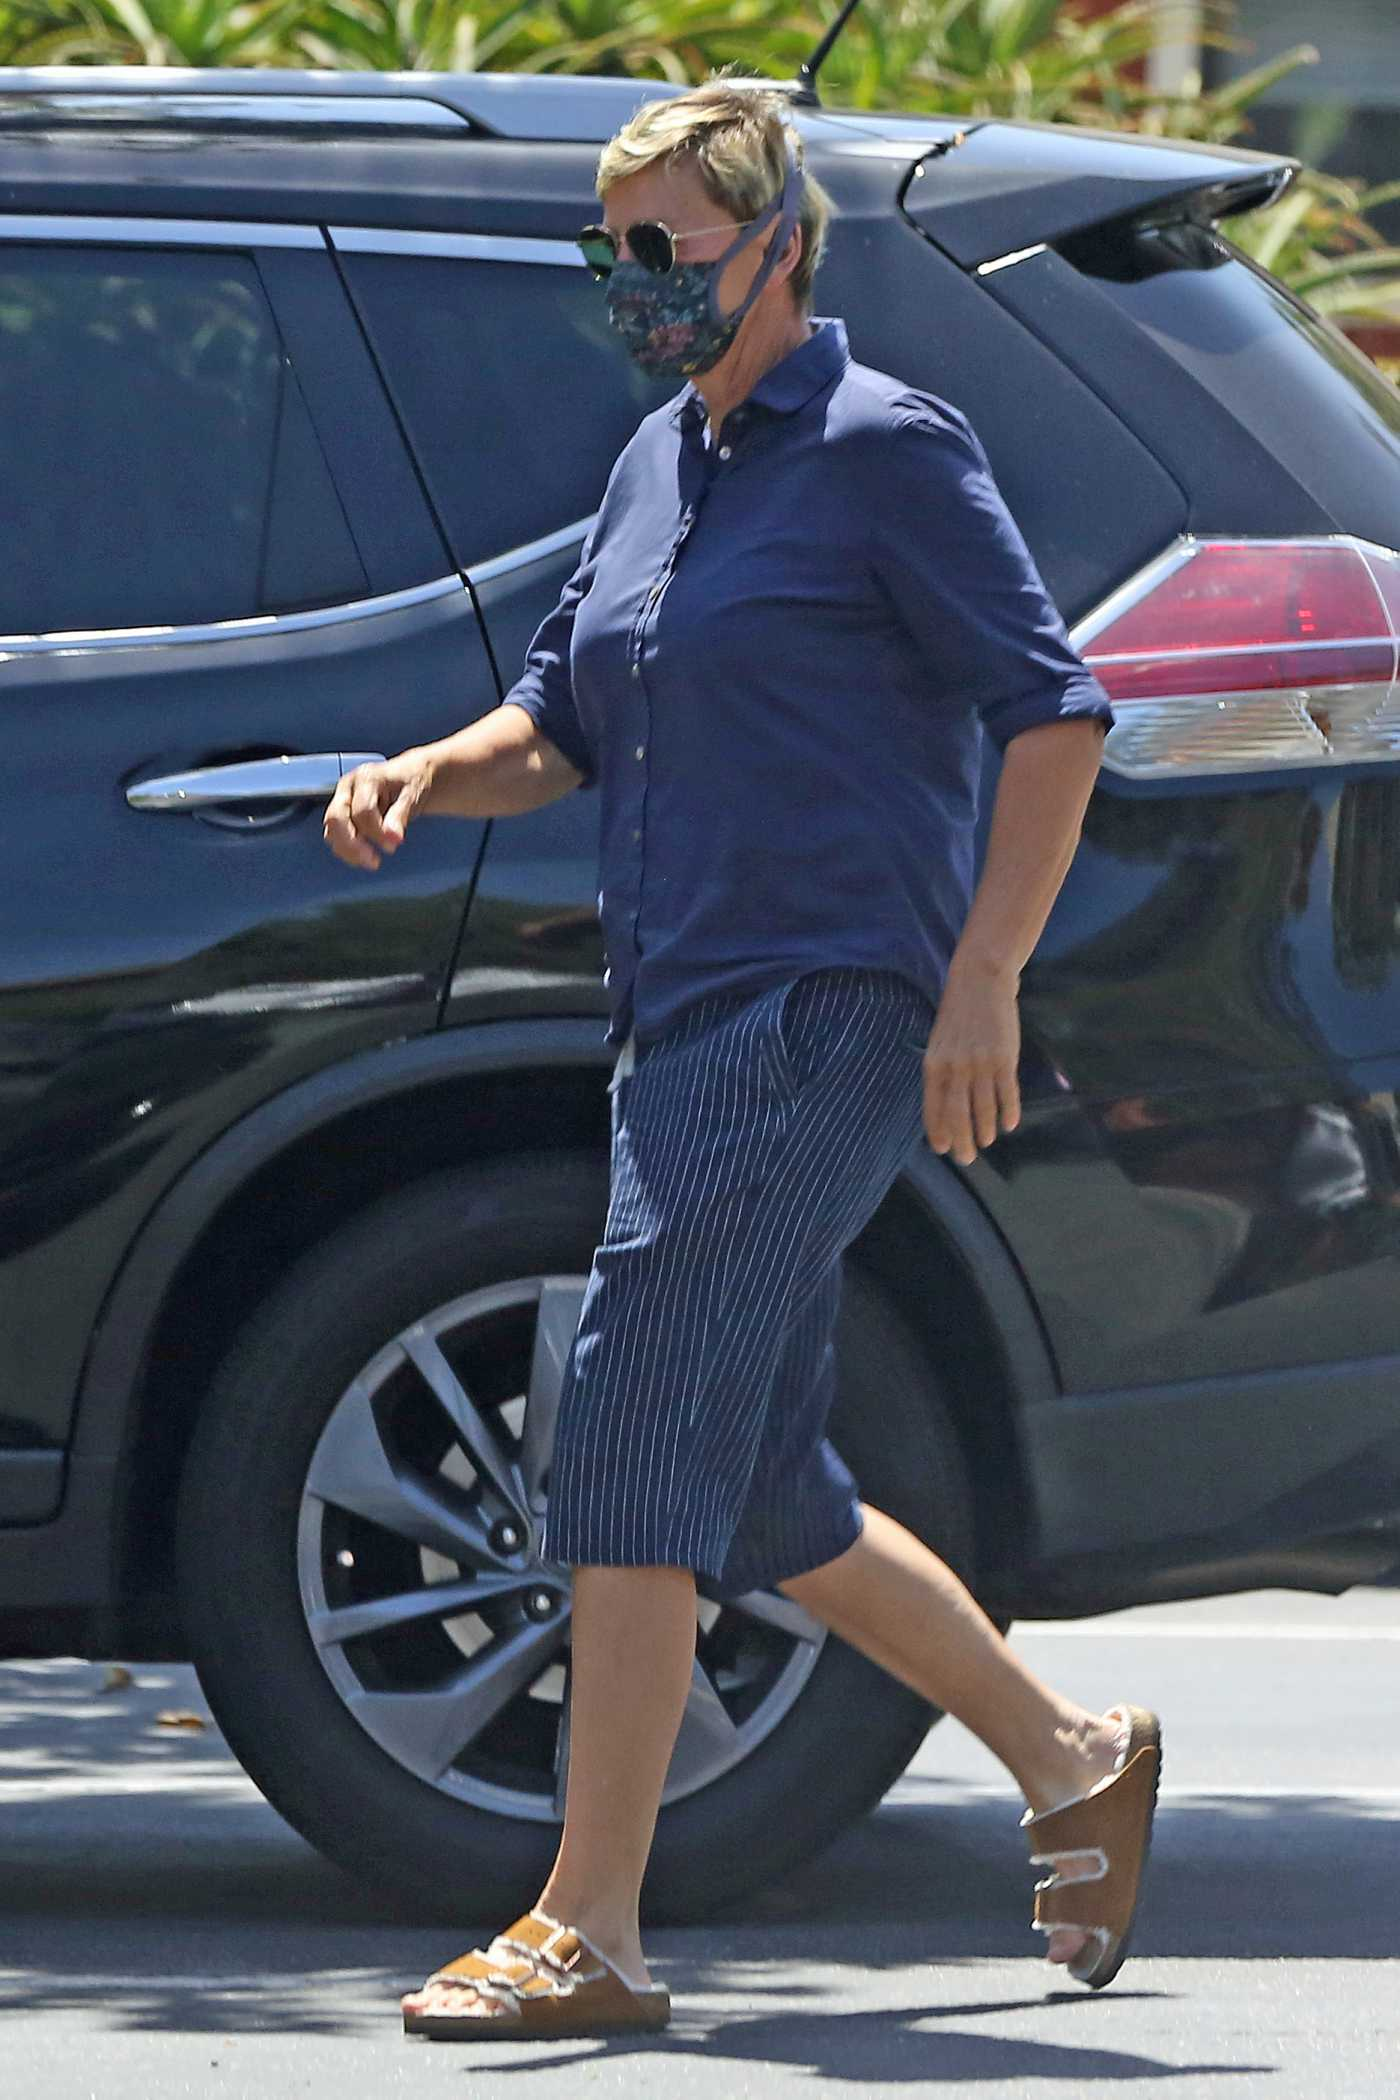 Ellen DeGeneres in a Blue Shirt Was Seen Out with Portia DeRossi in Santa Barbara 05/23/2020